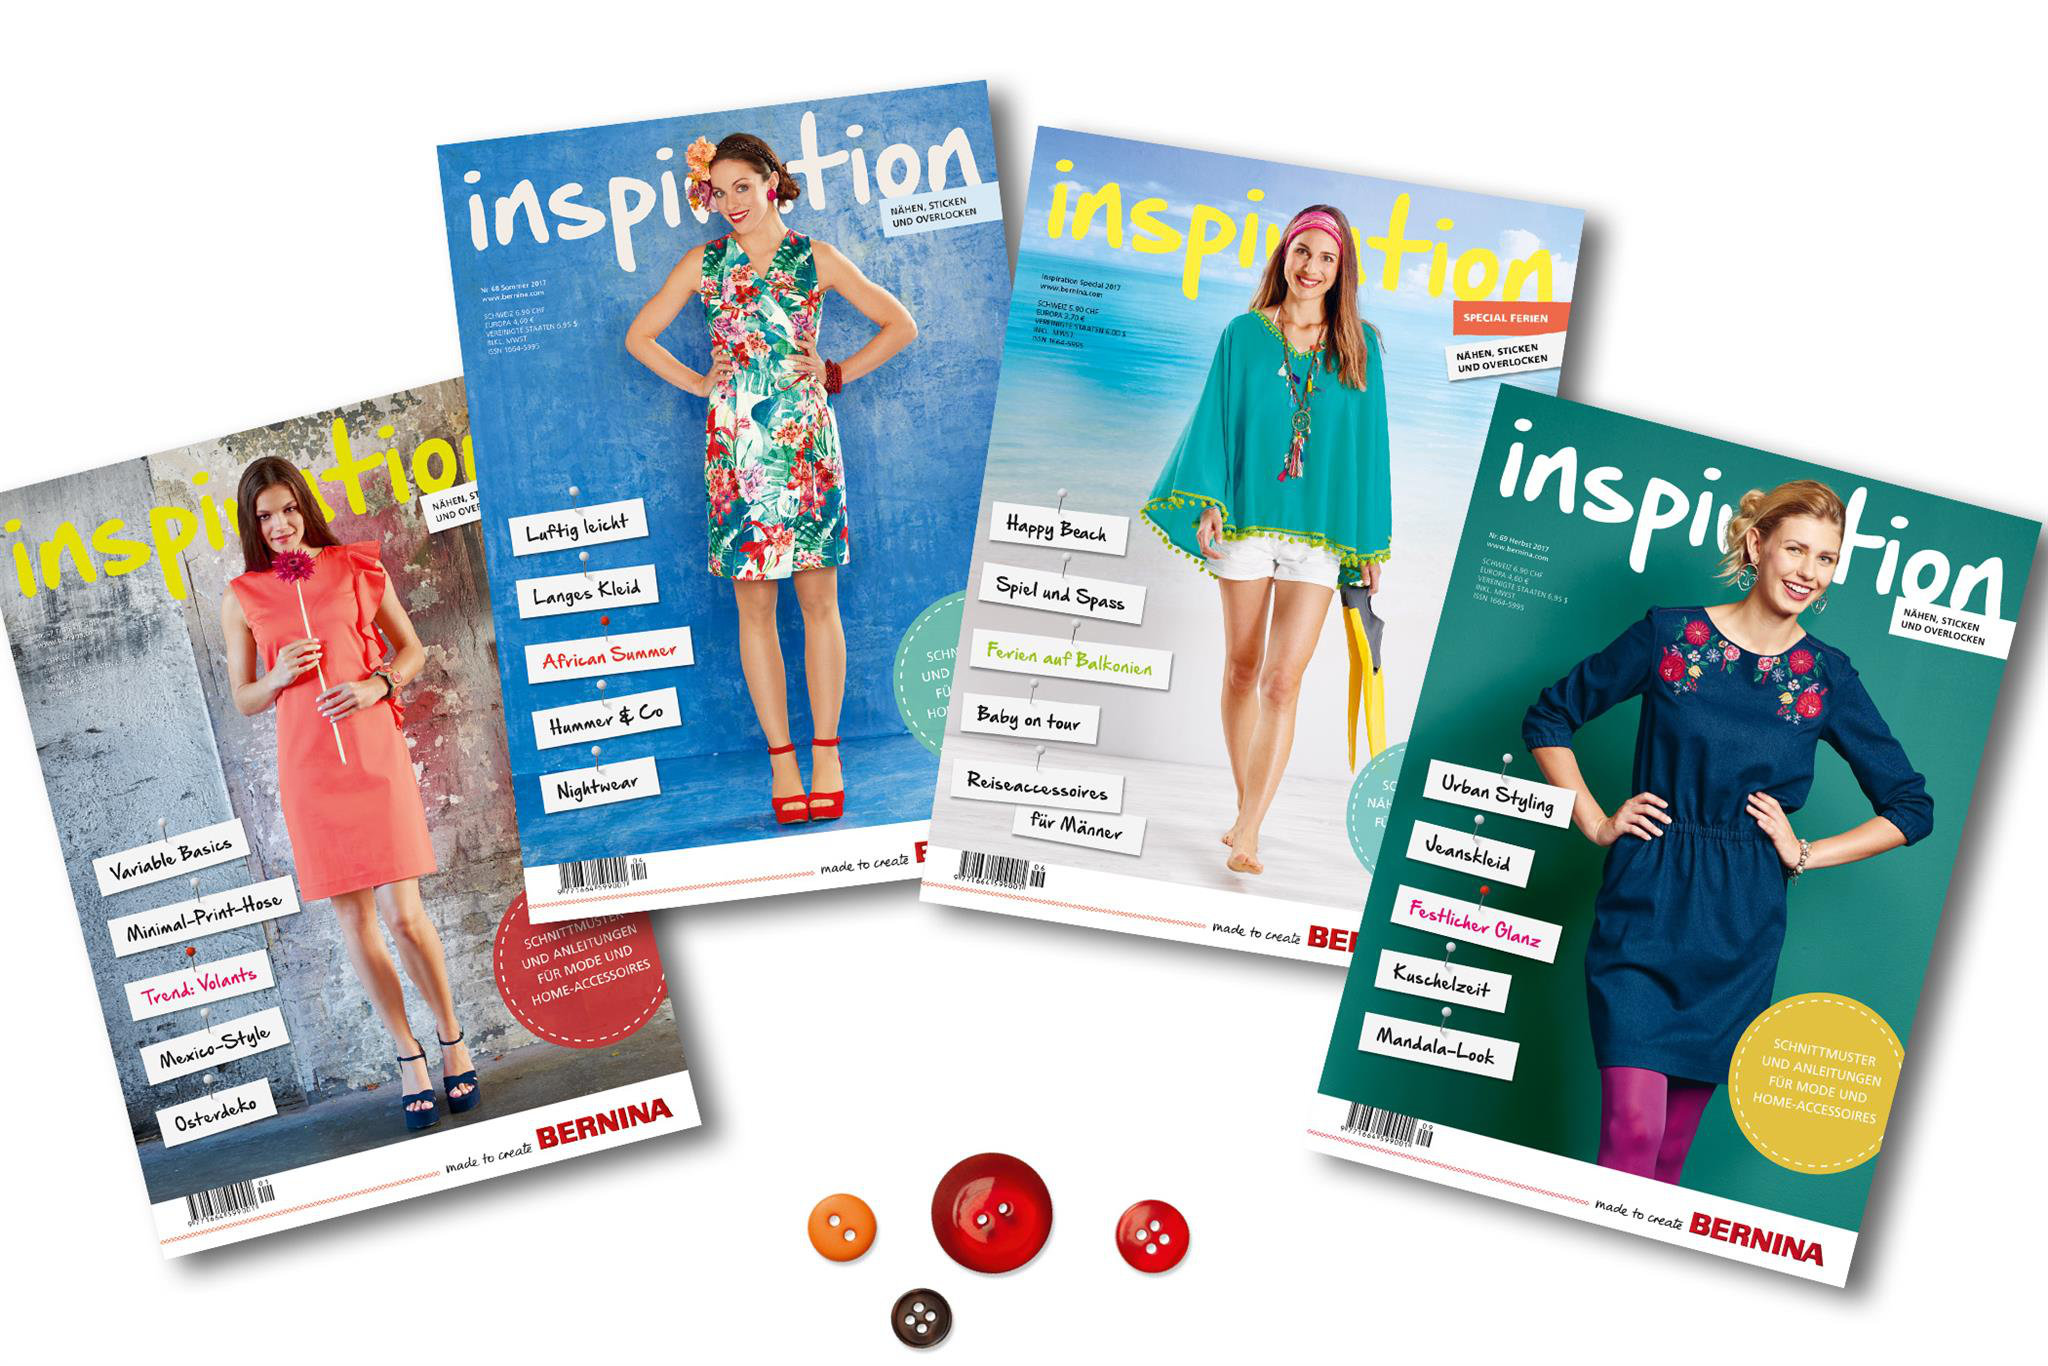 Inspiration One-Year-Subscription